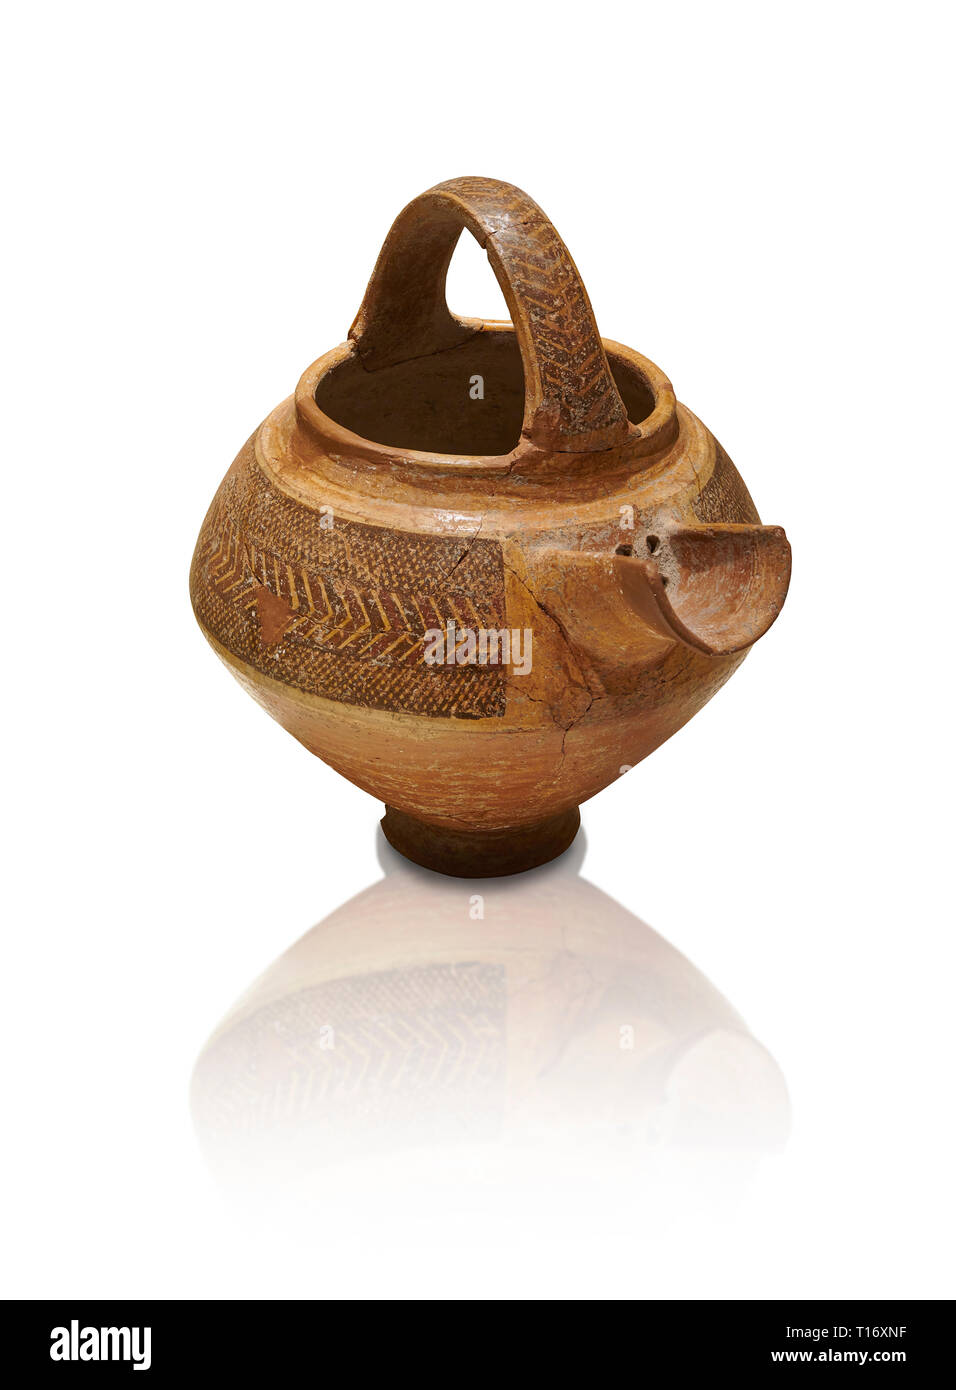 Bronze Age Anatolian decorated terra cotta tea pot with strainer - 19th to 17th century BC - Kültepe Kanesh - Museum of Anatolian Civilisations, Ankar - Stock Image